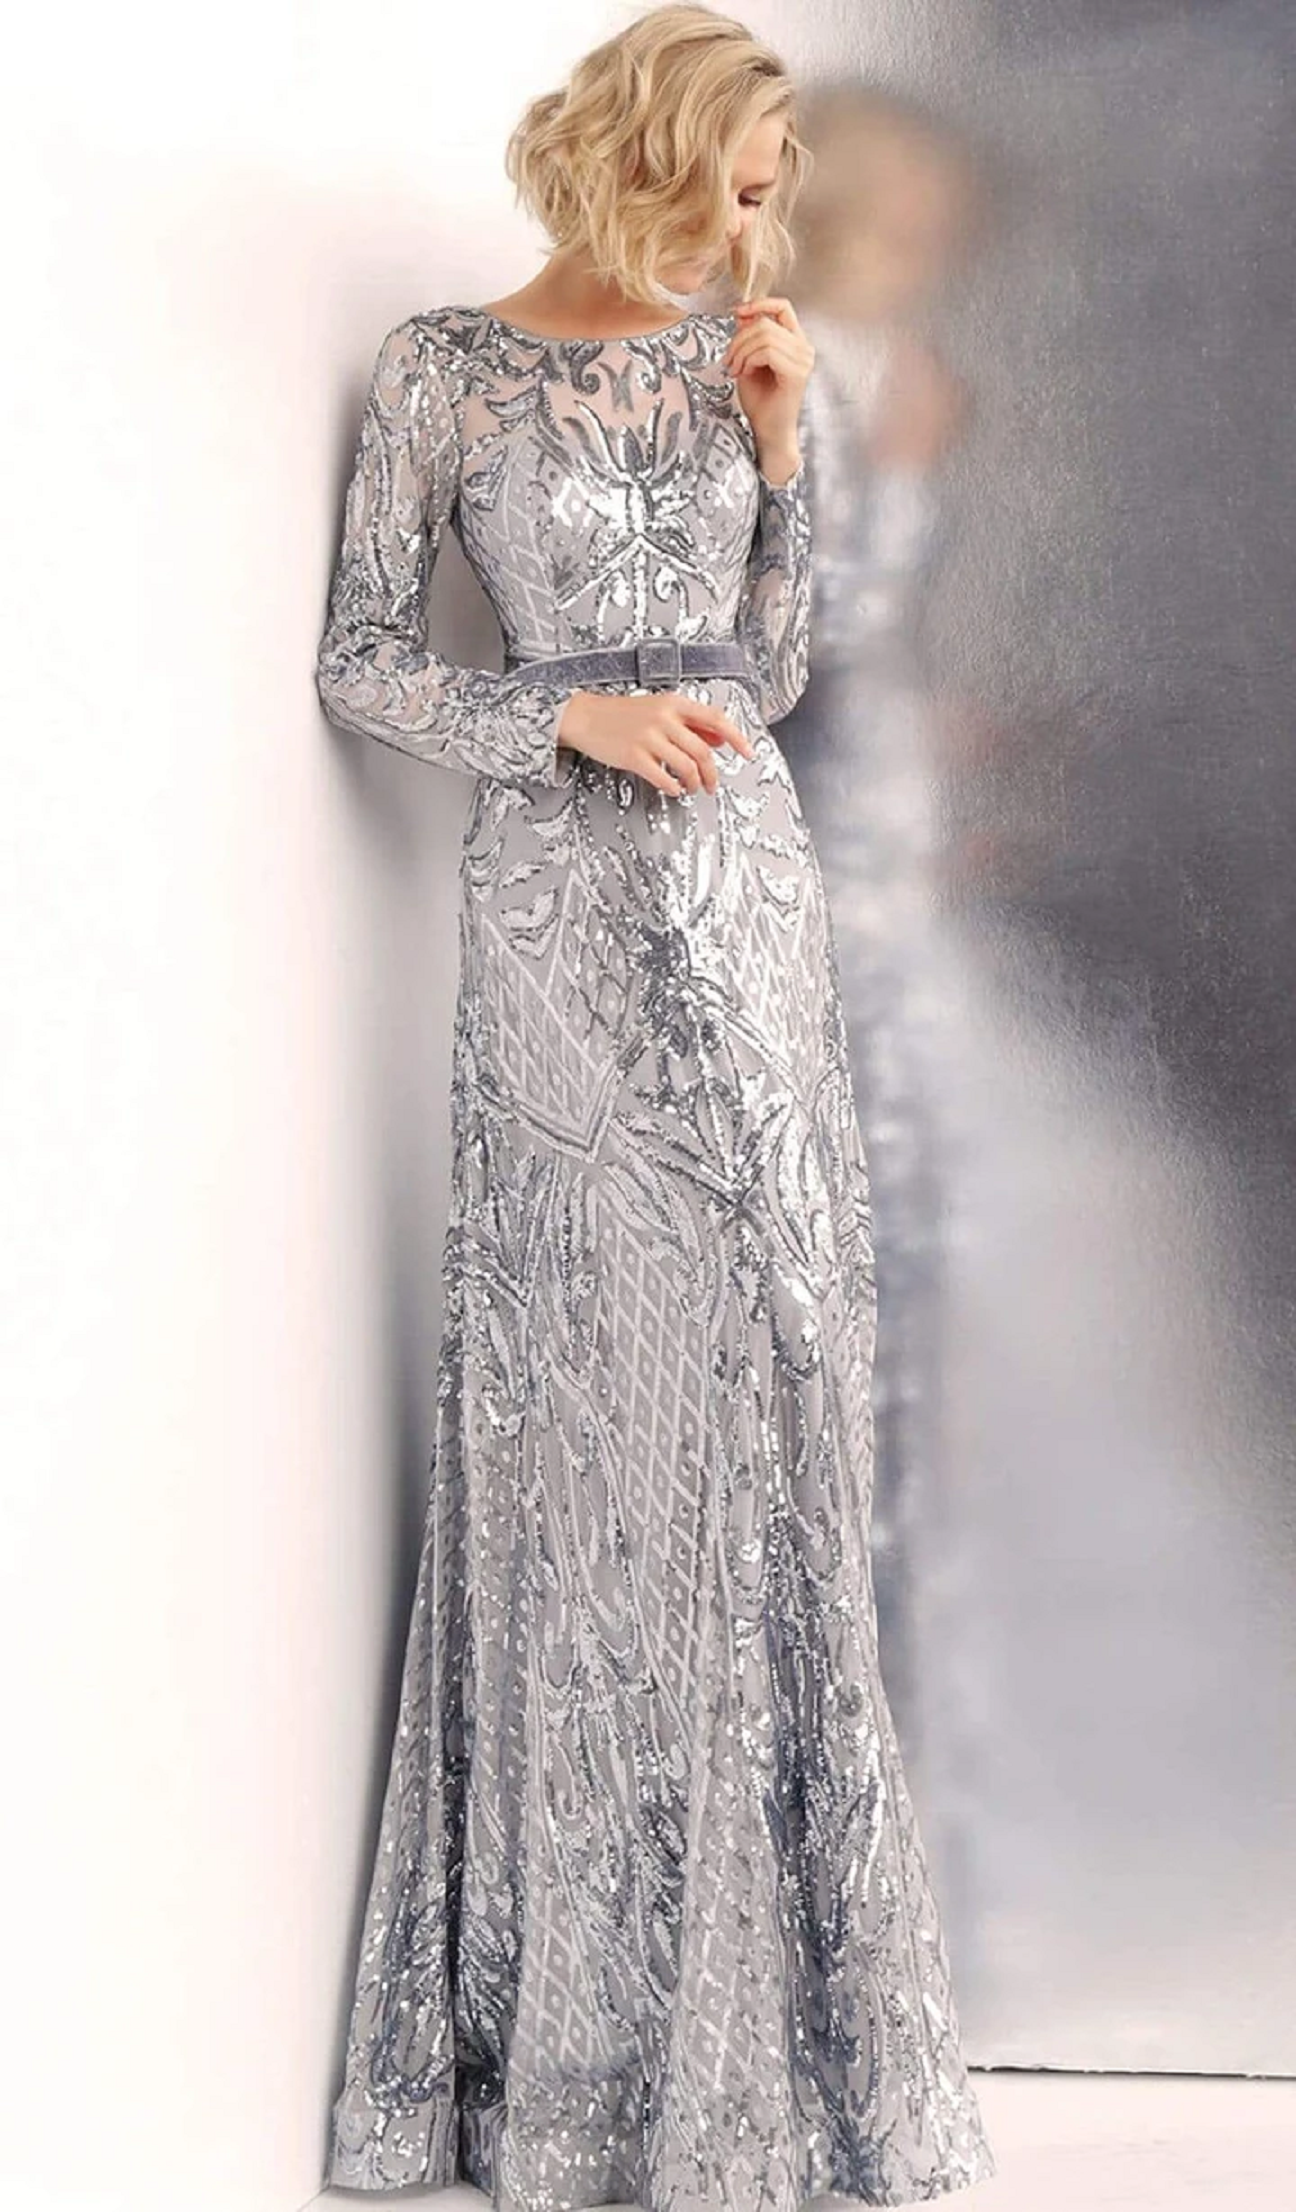 Best bling dresses online 2021 Gorgeous Maxi Long Sleeves Glittering Sequin with Classic Neck Gown